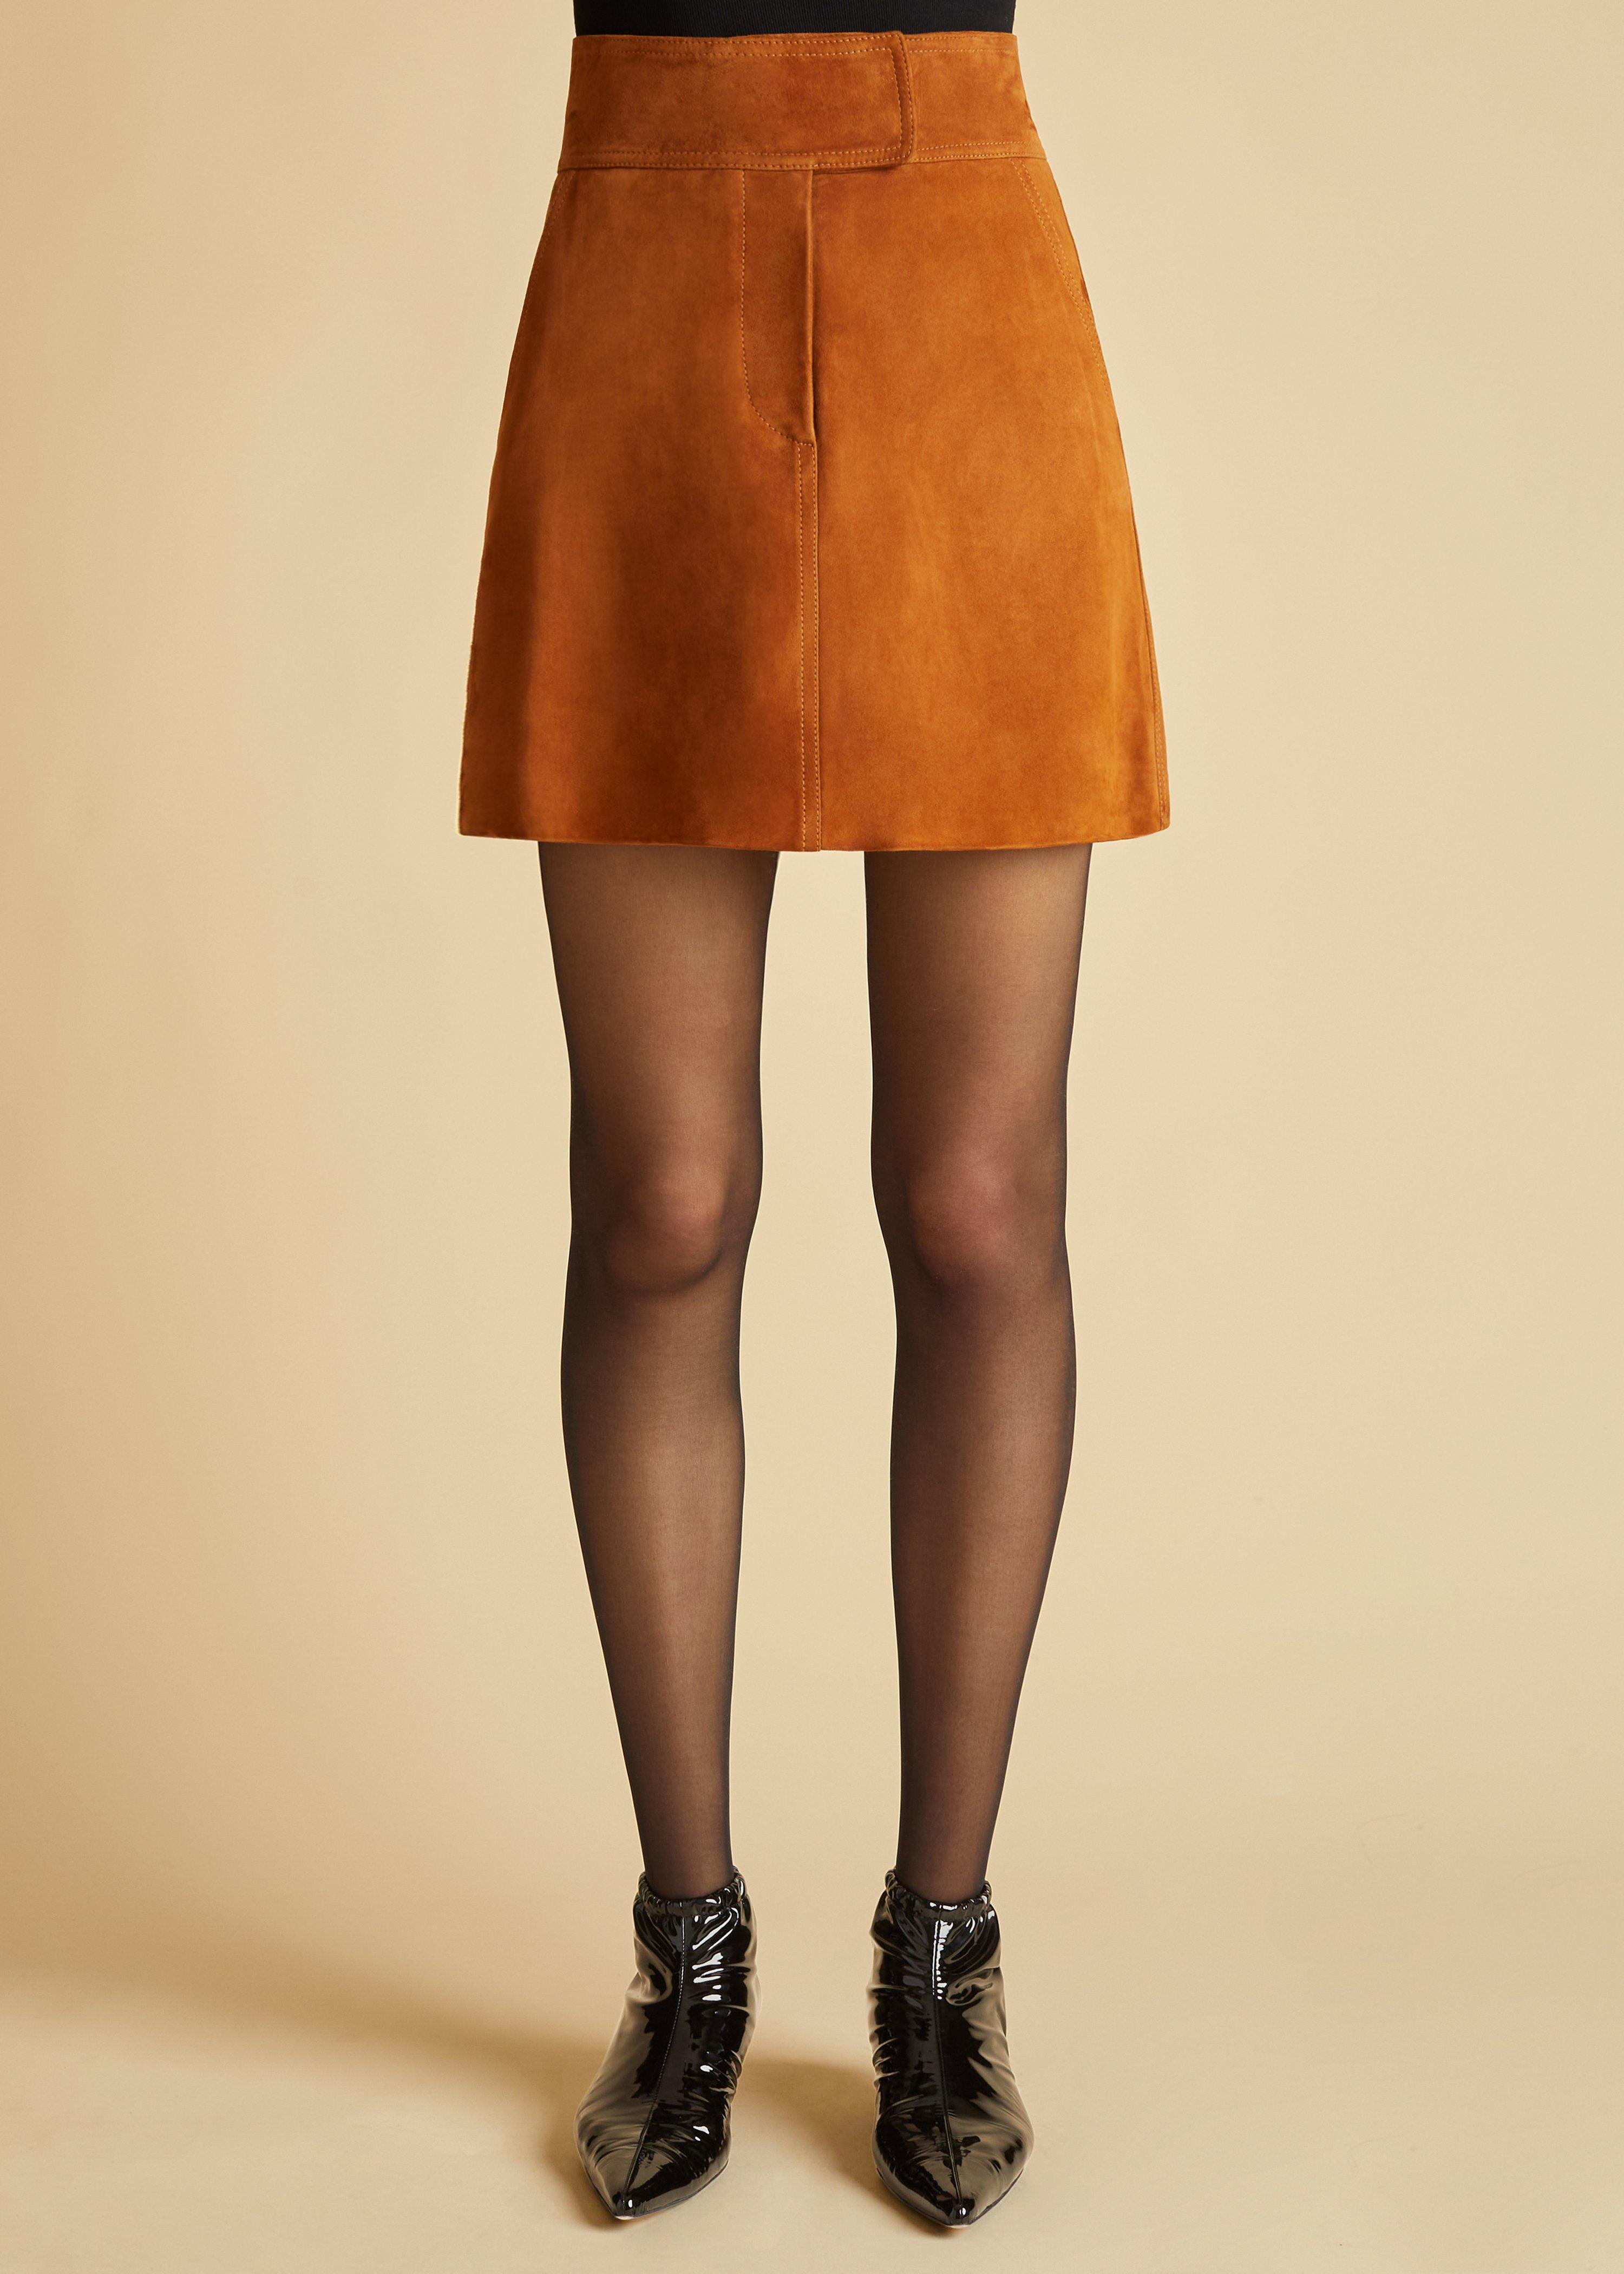 The Giulia Skirt in Chestnut Suede 1